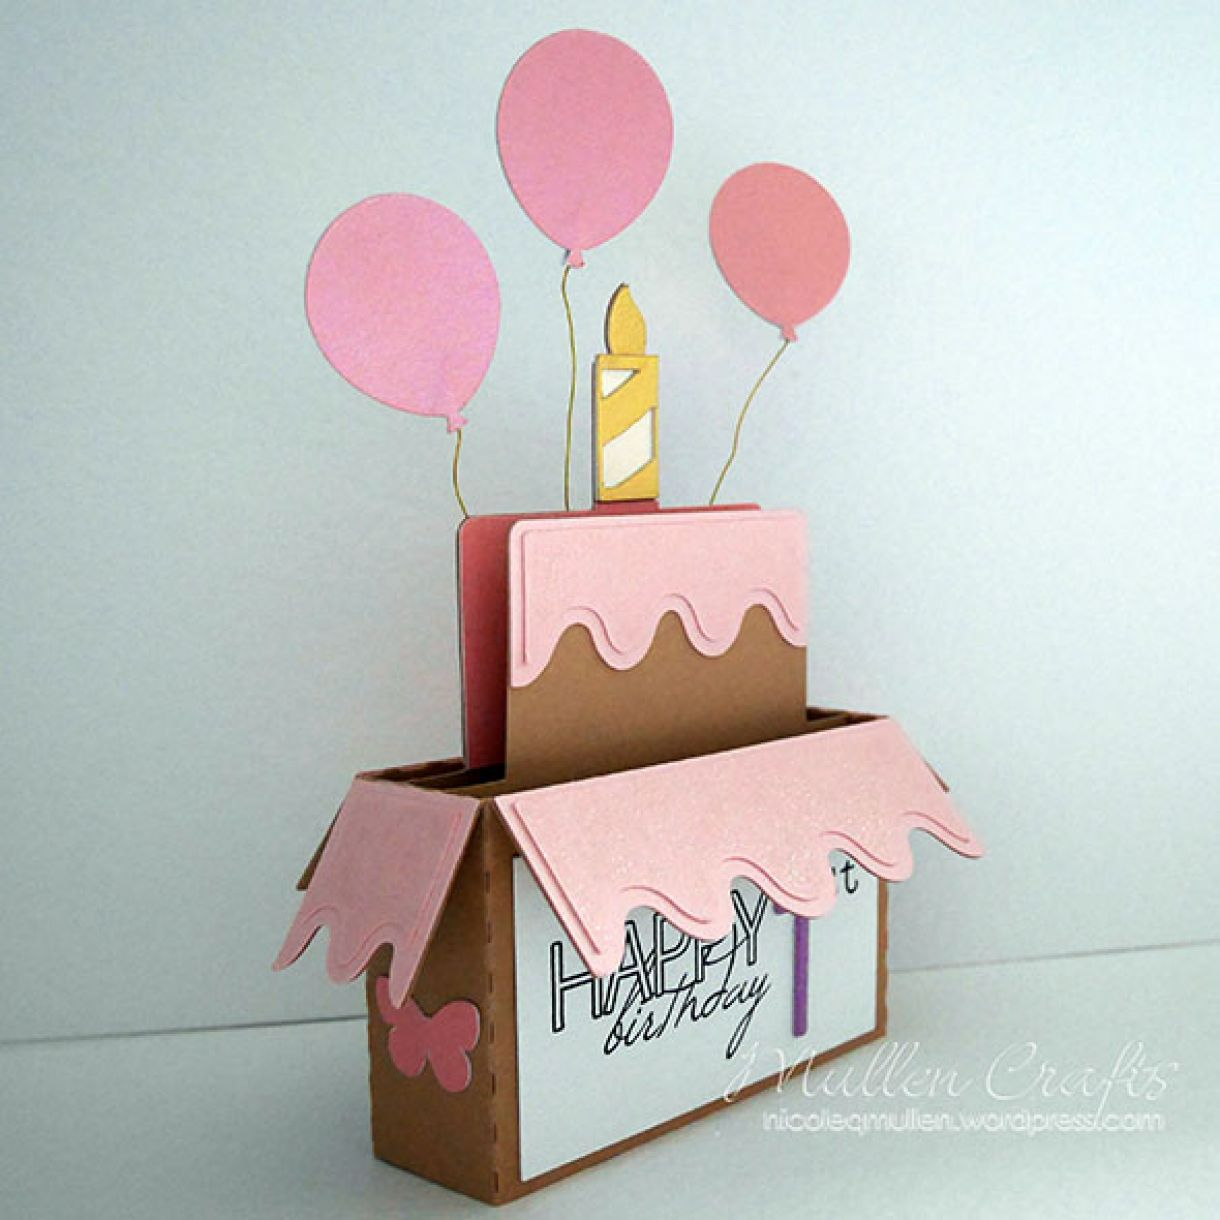 Making Birthday Card Ideas Handmade Birthday Card Idea Using Silhouette Birthday Box Cutting File